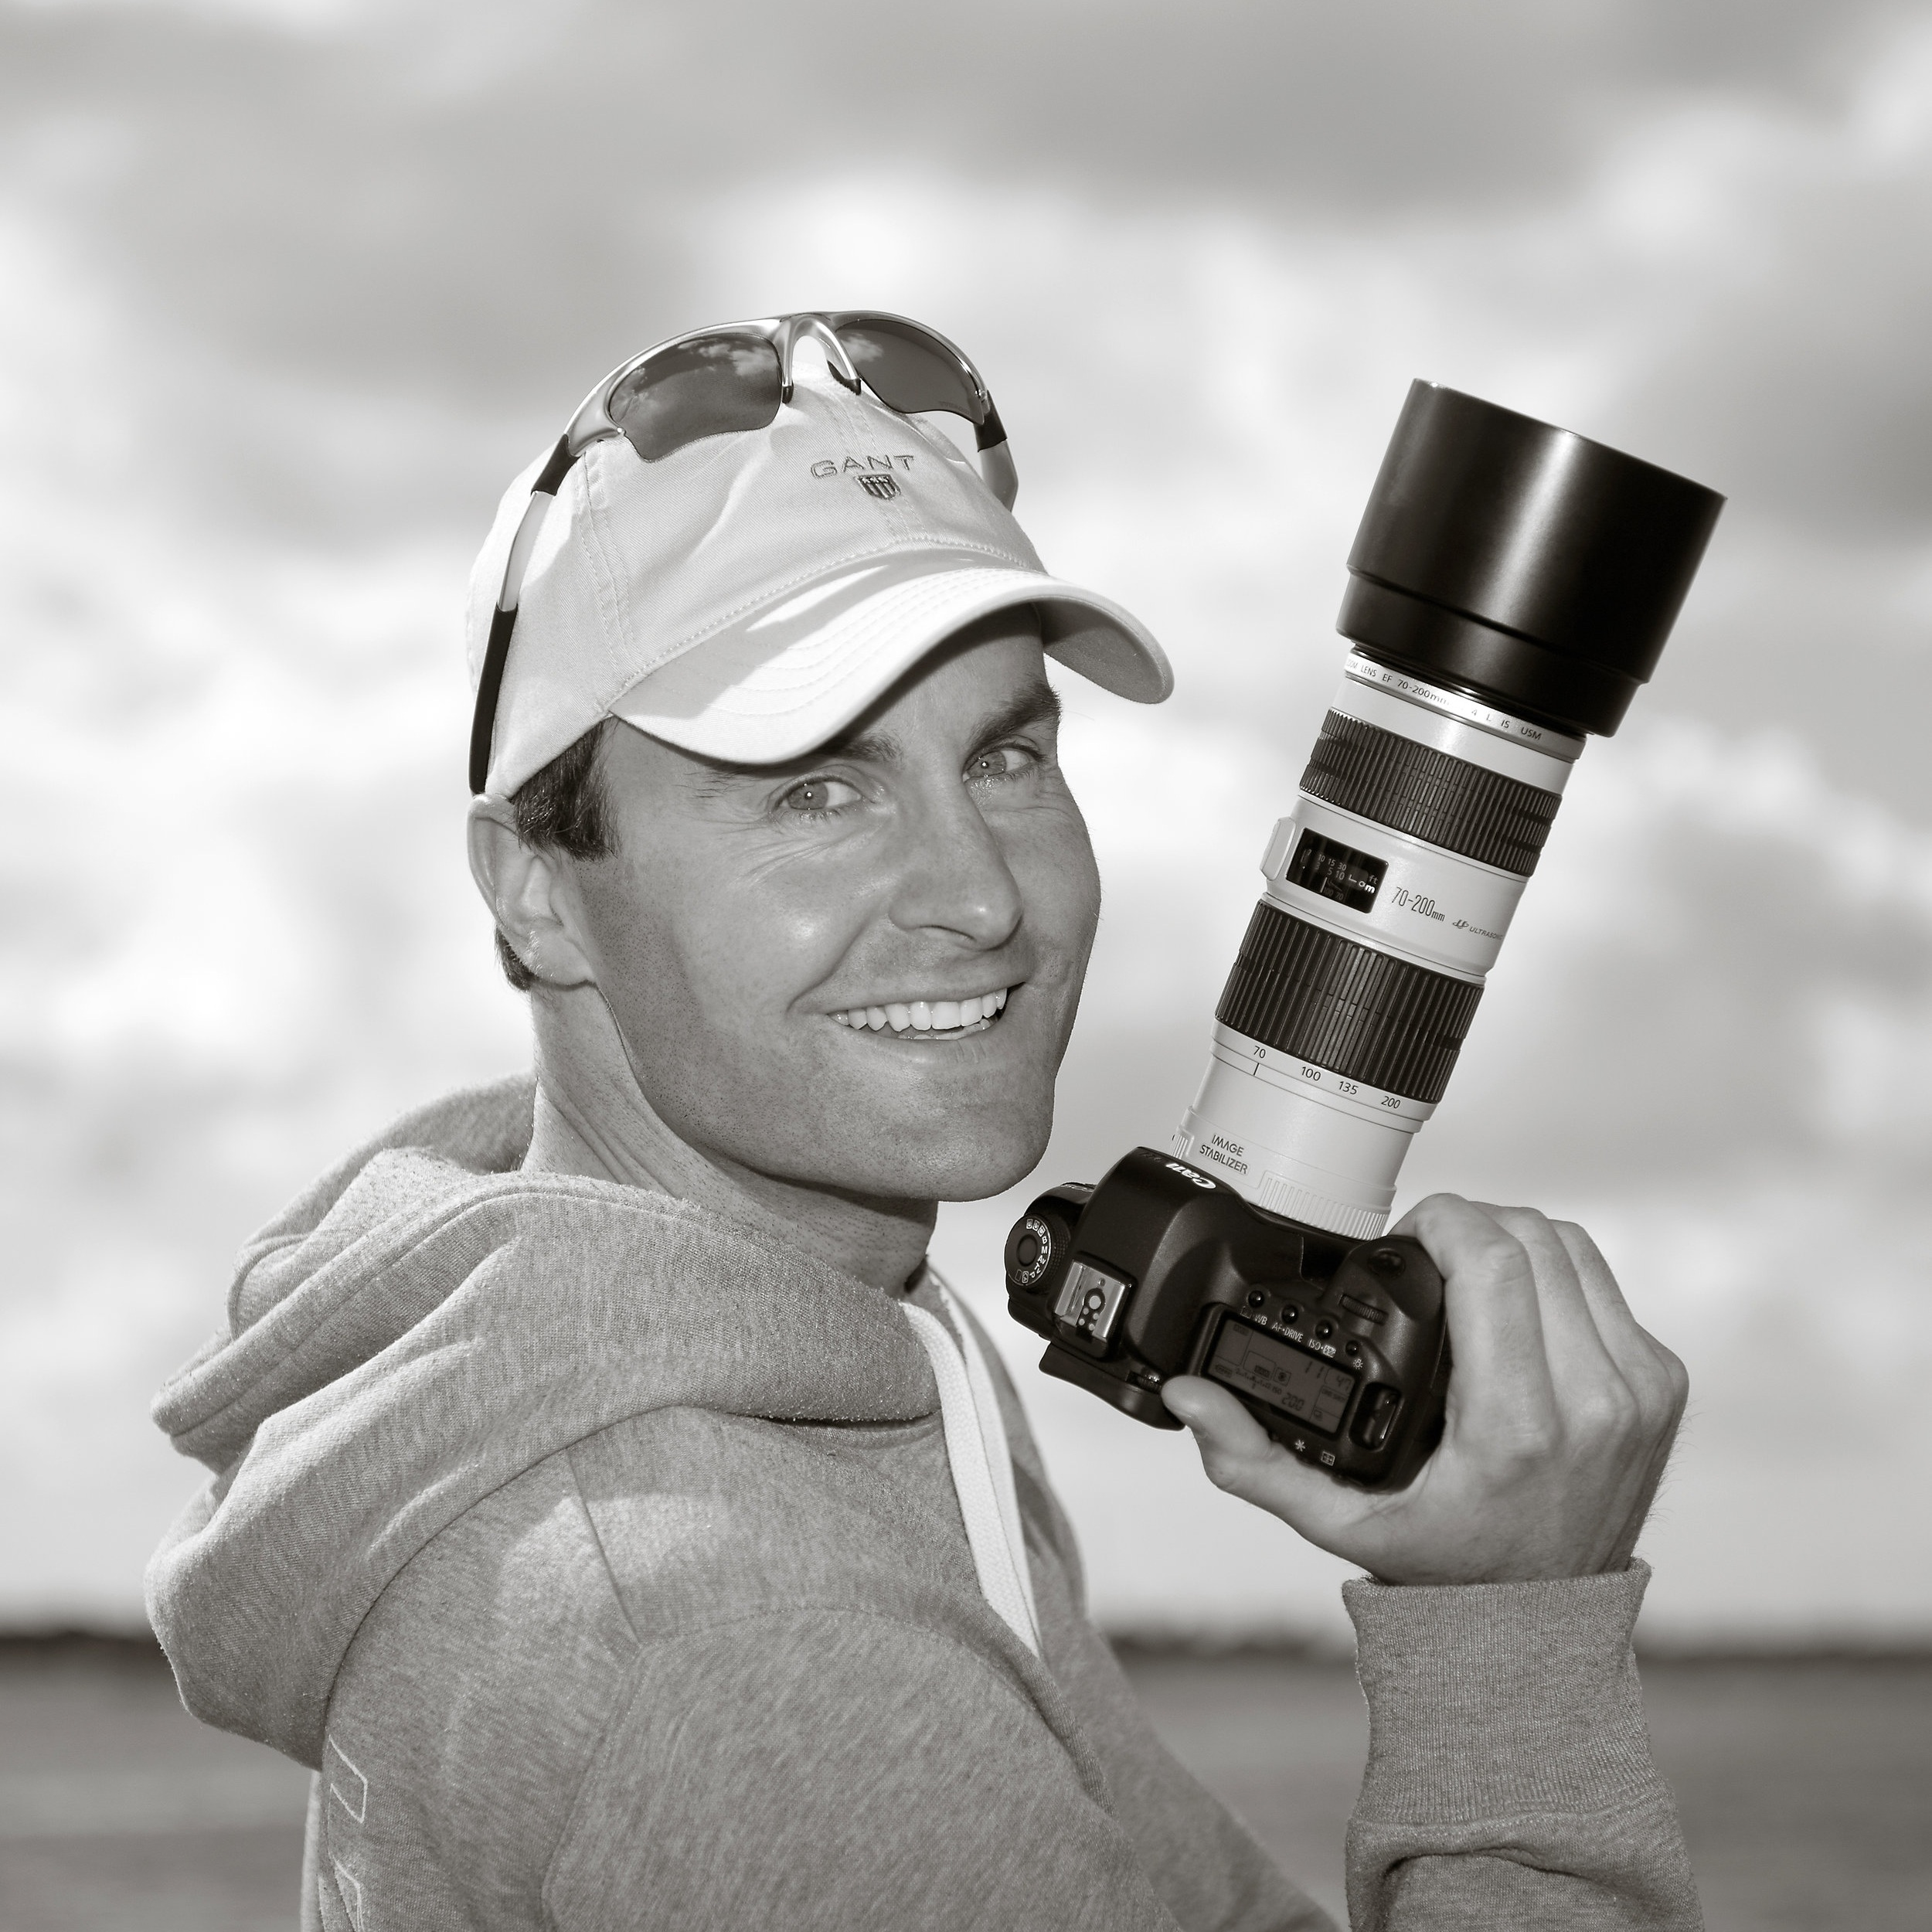 """luke whitaker - FOUNDER & TUTORLuke is an English photographer and gallery owner with a love of the sea who lives and works in the beautiful waterside village of Bosham, on Britain's south coast.He is hugely passionate about photography's growing position within the art world and in 2012 he set up a photographic gallery on Bosham's historic waterfront specialising in marine, landscape and wildlife photographs.Luke has a keen eye for what sells and why, and personally represents some of the world's leading photographic artists. He has an established record of running successful exhibitions that frequently outsell the London galleries, and has developed a growing list of collectors on the south coast.Luke has always been drawn to the sea and his personal work is dominated with coastal views and English seascapes. """"I try to capture some of the rhythm and timeless beauty of Britain's coastline that has remained unchanged for centuries"""".Luke was educated at King's College School in Wimbledon and Cambridge University. He lives in Emsworth with his wife Sally and their two children. Outside of photography, his dream ambition is to own a small fishing boat and catch seabass within Chichester Harbour."""